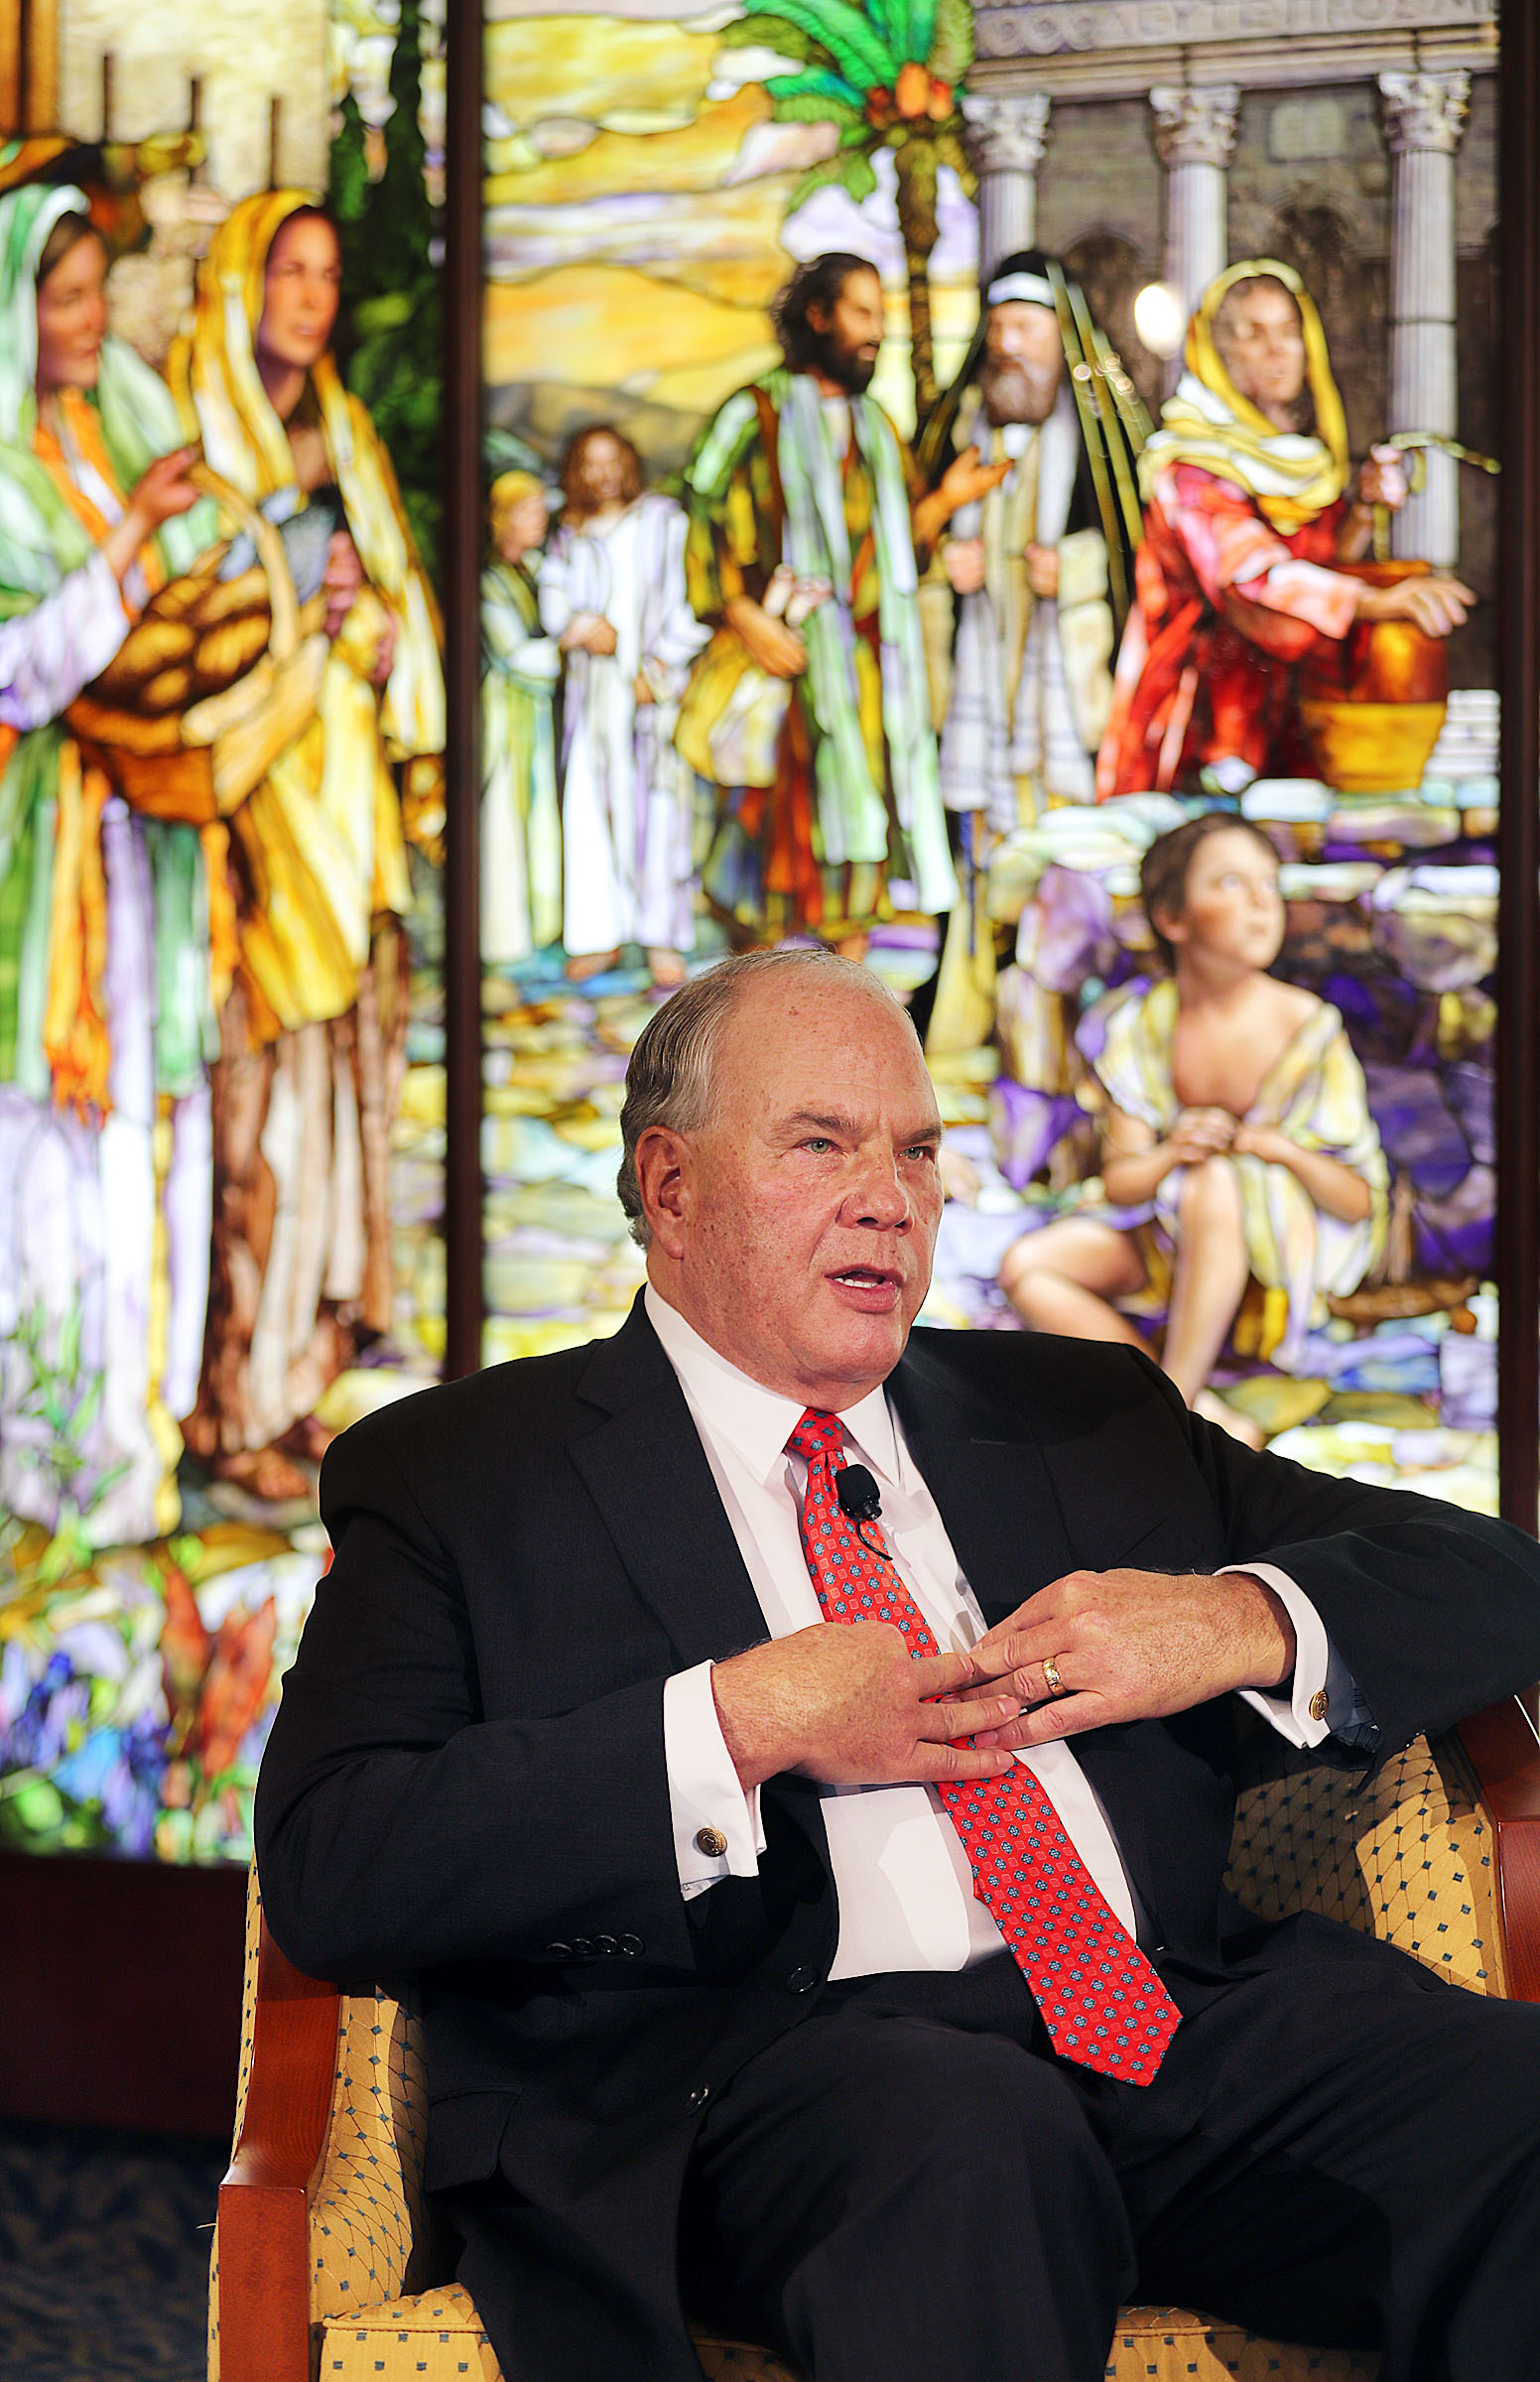 Elder Ronald A. Rasband of the Quorum of the Twelve Apostles answers a question during a press conference in the Rome Temple Visitors' Center of The Church of Jesus Christ of Latter-day Saints on Monday, Jan. 14, 2019.